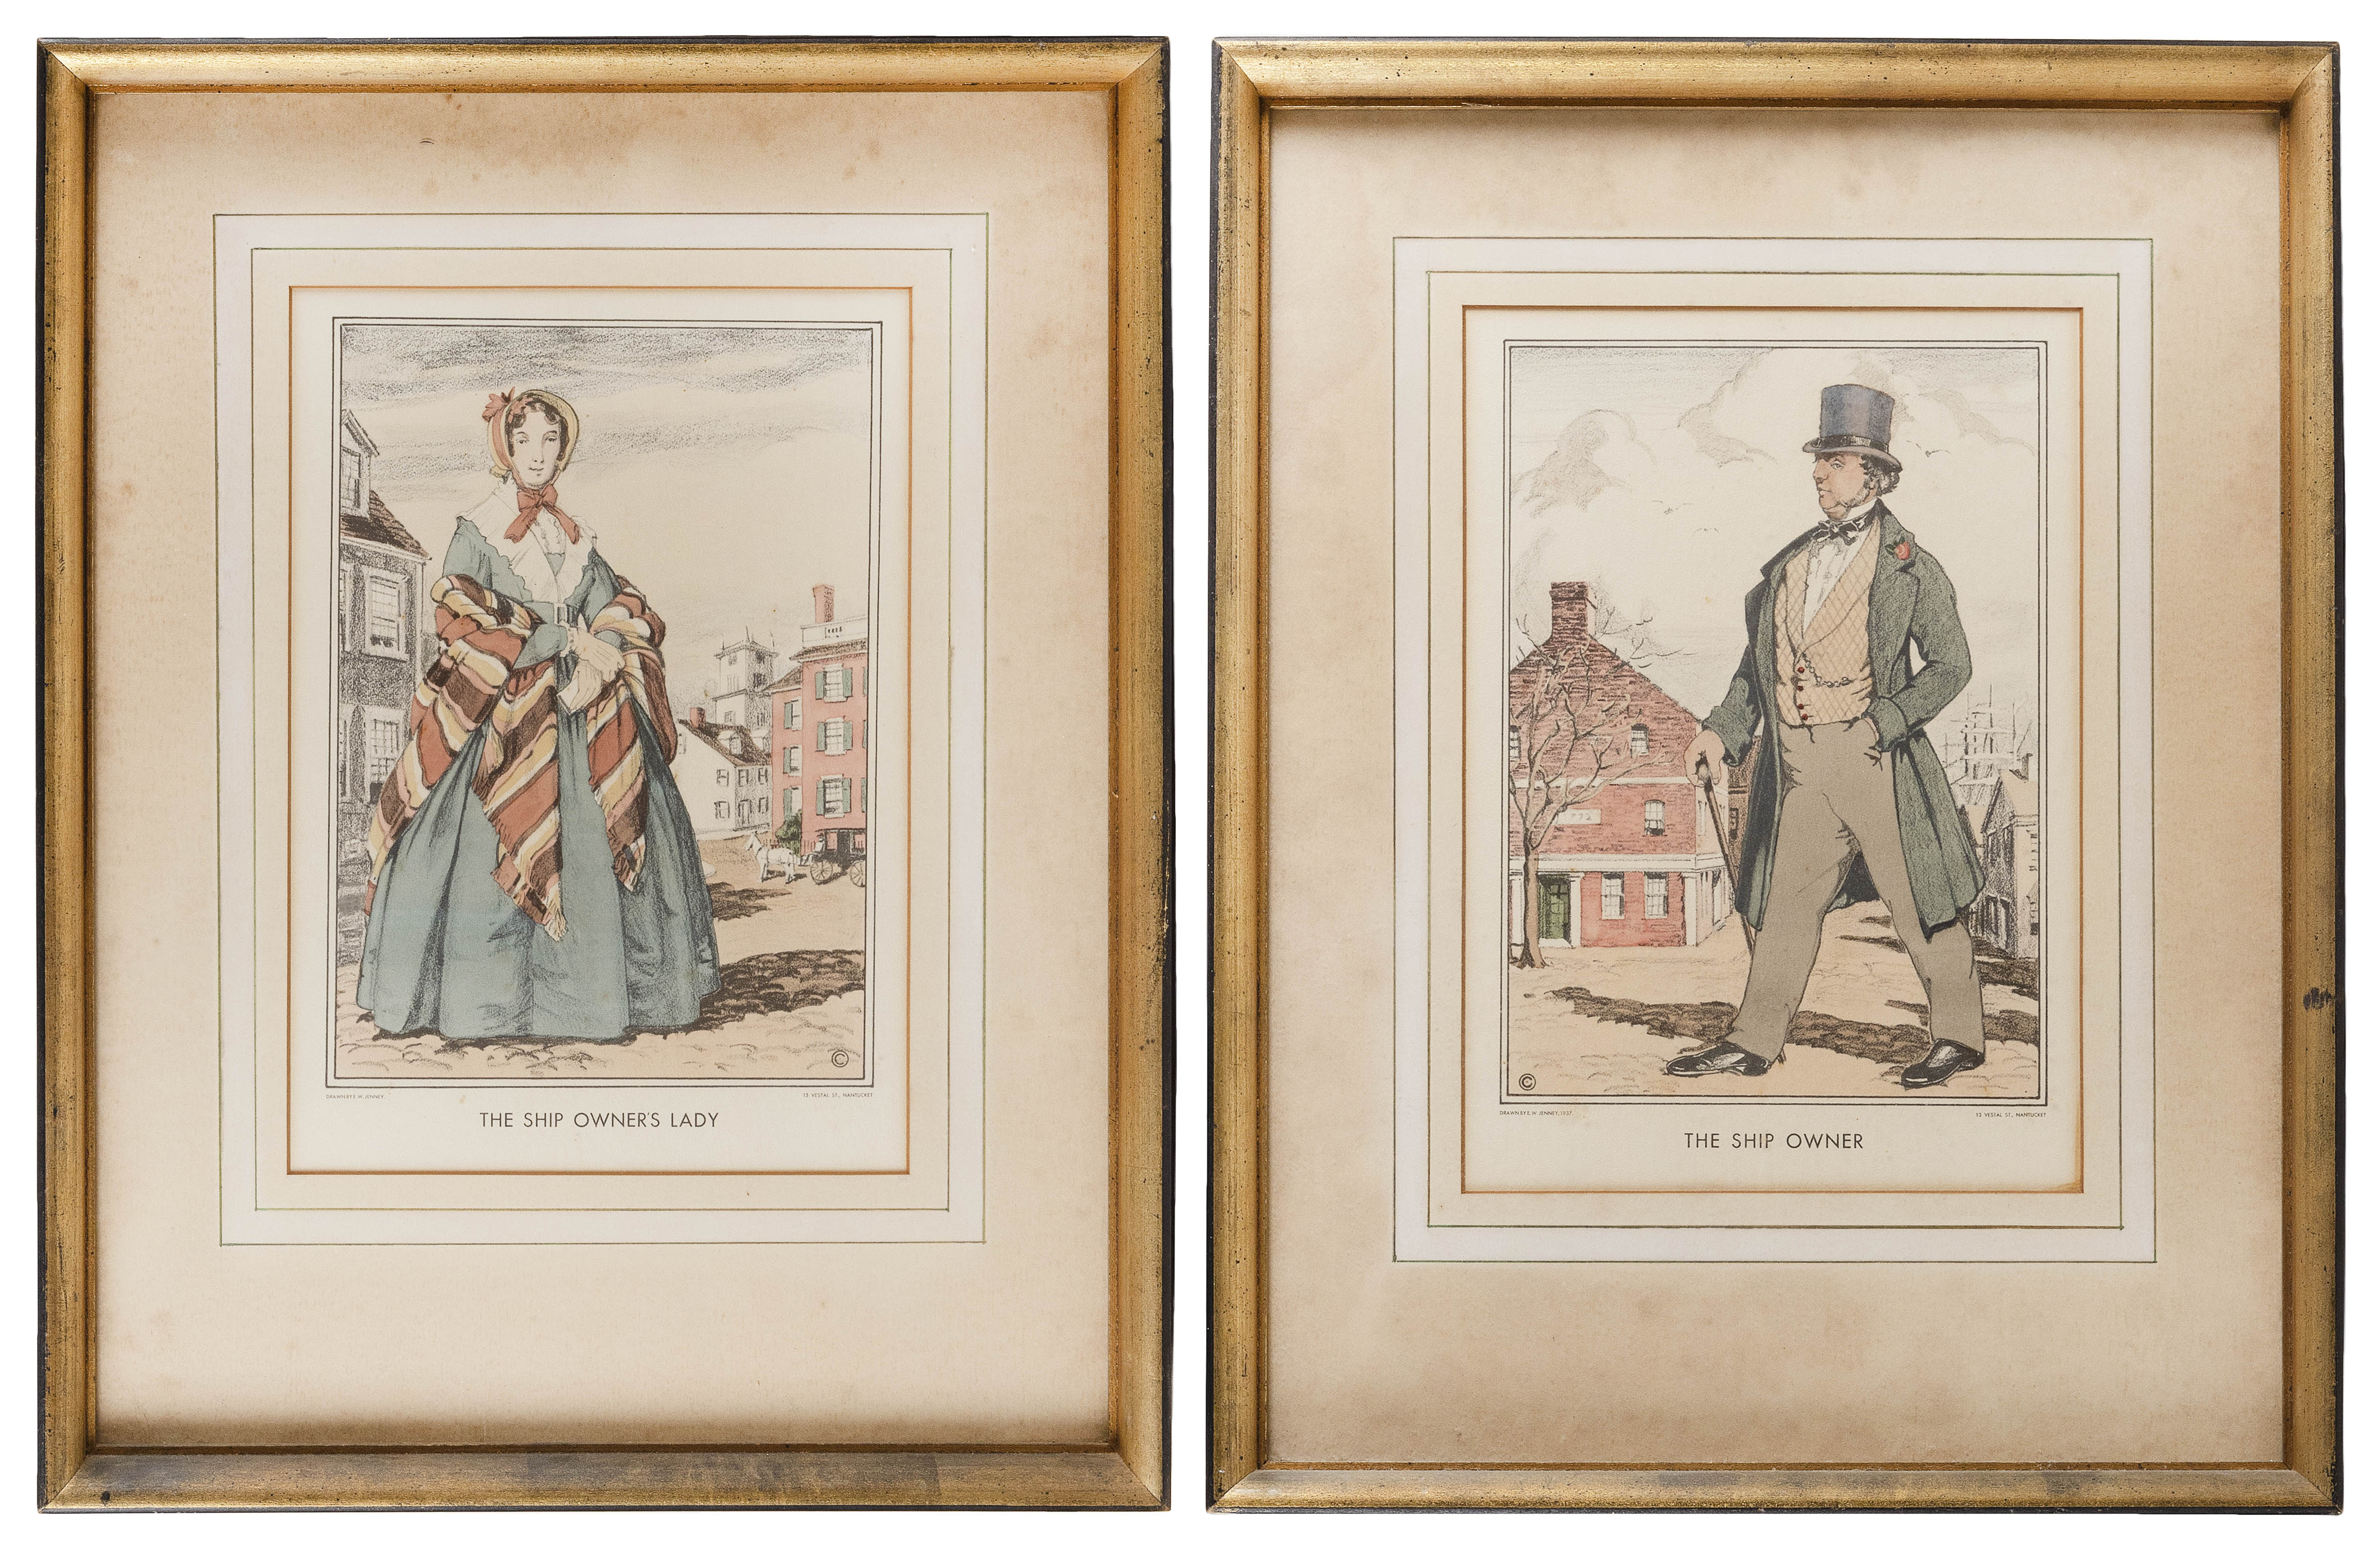 """EDGAR W. JENNY (Nantucket, Early 20th Century), """"The Ship Owner"""" and """"The Ship Owners Lady""""., Hand-colored lithographs on paper, 12.5"""